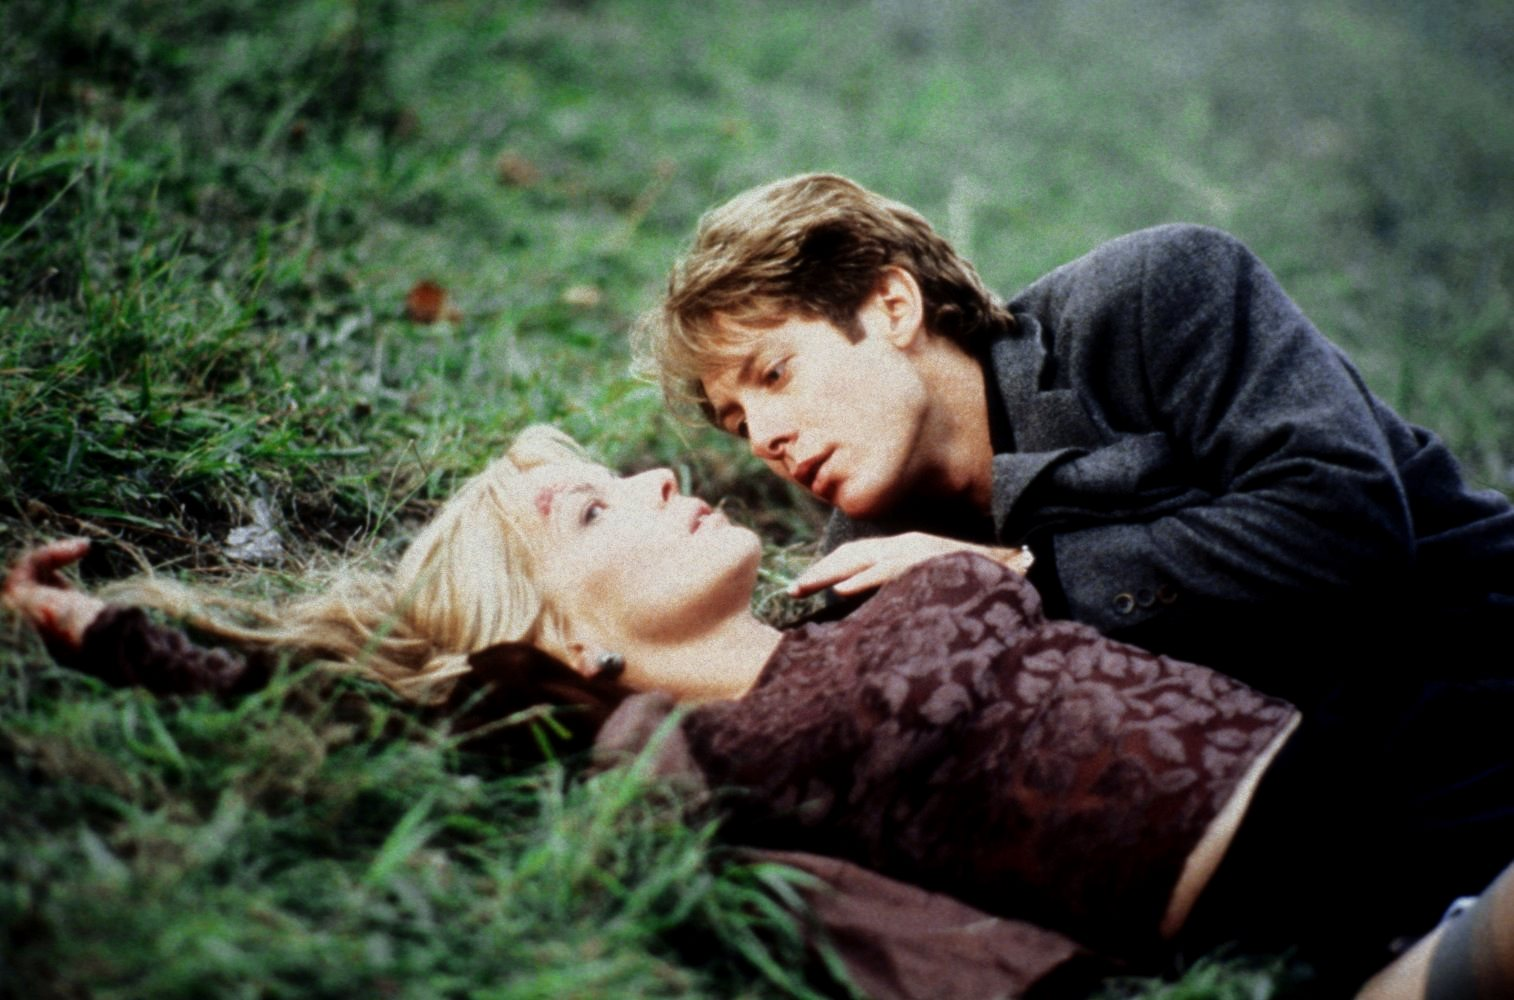 James Spader and Deborah Kara Unger have sex on the side of the road after a car crash in Crash (1996)